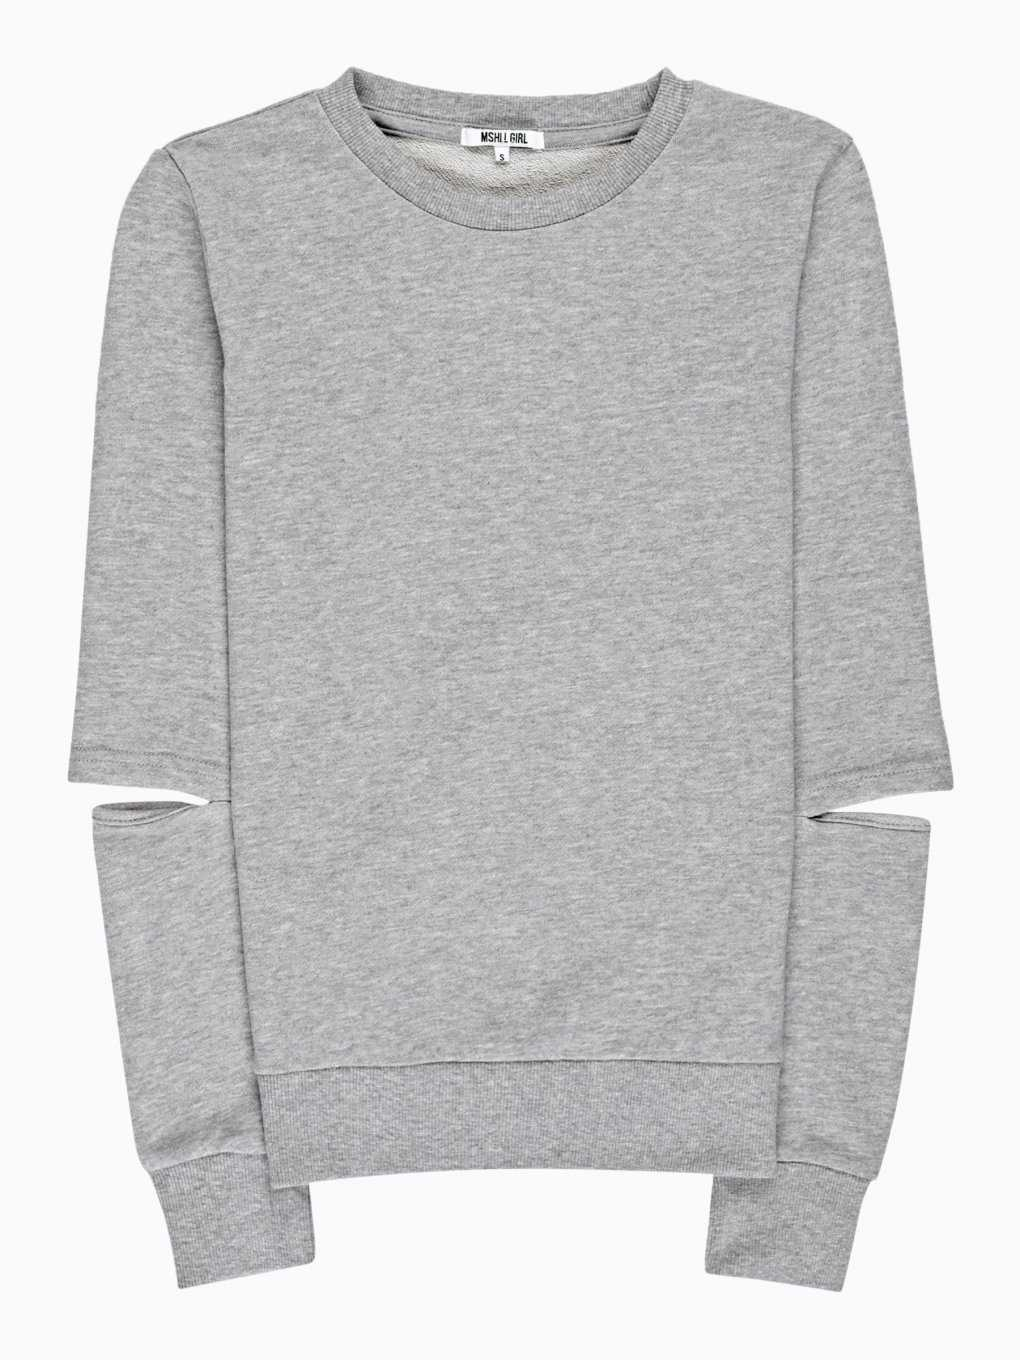 SWEATSHIRT WITH CUT ELBOW